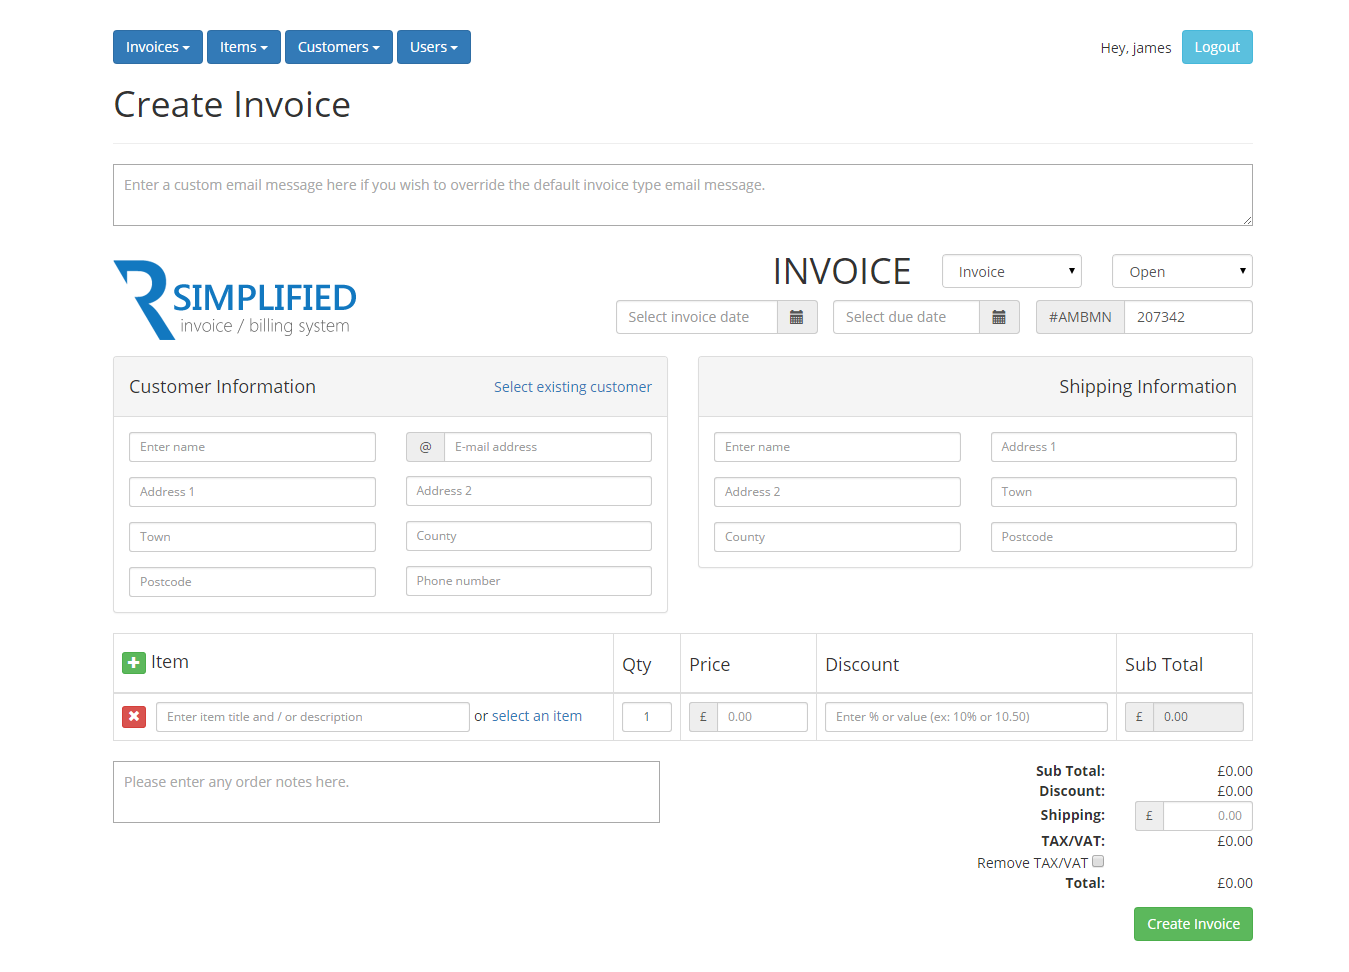 Totallocalus  Unique Simplified Php Invoice  Billing System By Rebootdigitaluk  With Outstanding  Createinvoicepng  With Delightful Free Sample Invoice Templates Also Price Invoice In Addition How To Make A Proforma Invoice And Ato Invoice As Well As Format Of Invoice Bill Additionally Free Invoice Templates Download From Codecanyonnet With Totallocalus  Outstanding Simplified Php Invoice  Billing System By Rebootdigitaluk  With Delightful  Createinvoicepng  And Unique Free Sample Invoice Templates Also Price Invoice In Addition How To Make A Proforma Invoice From Codecanyonnet